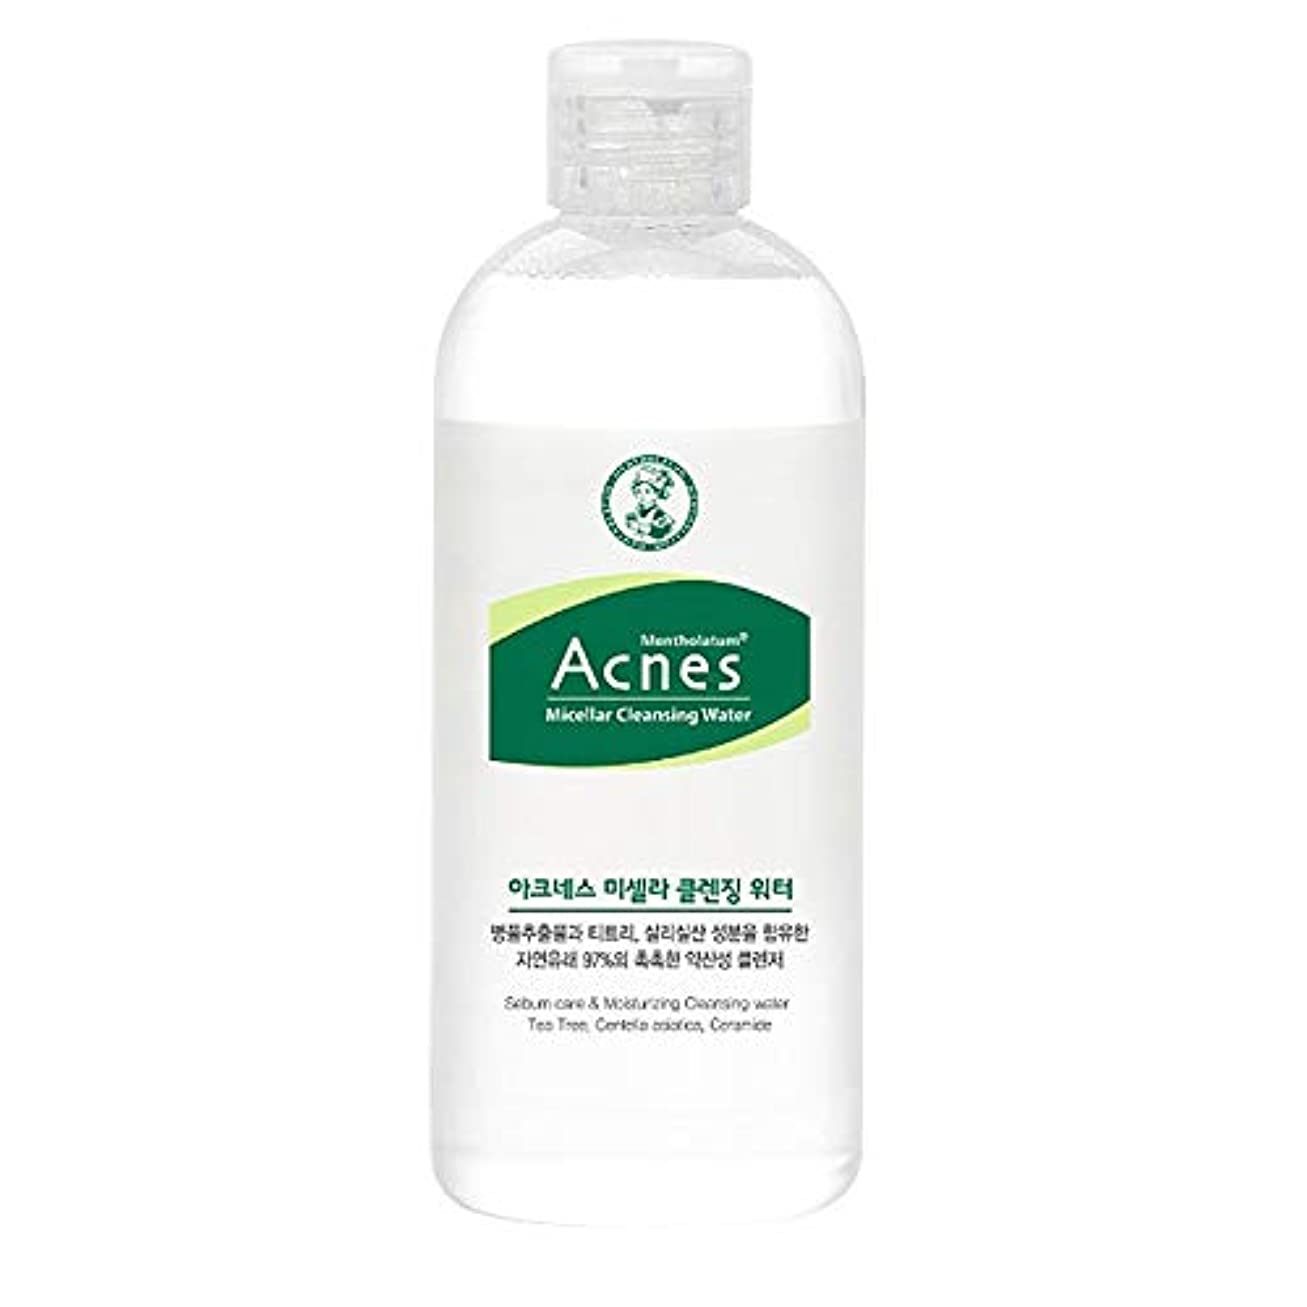 リフト何アナウンサー[Acnes] アクネス ミシェーラ クレンジング ウォーター Micellar Cleansing Water メイク落とし - Acne Eliminating Face Cleanser, Balance Oil Cleansing Water with Tea tree, Centella Asiatica for Oily and Sensitive Skin Korean Skincare #Dab1163